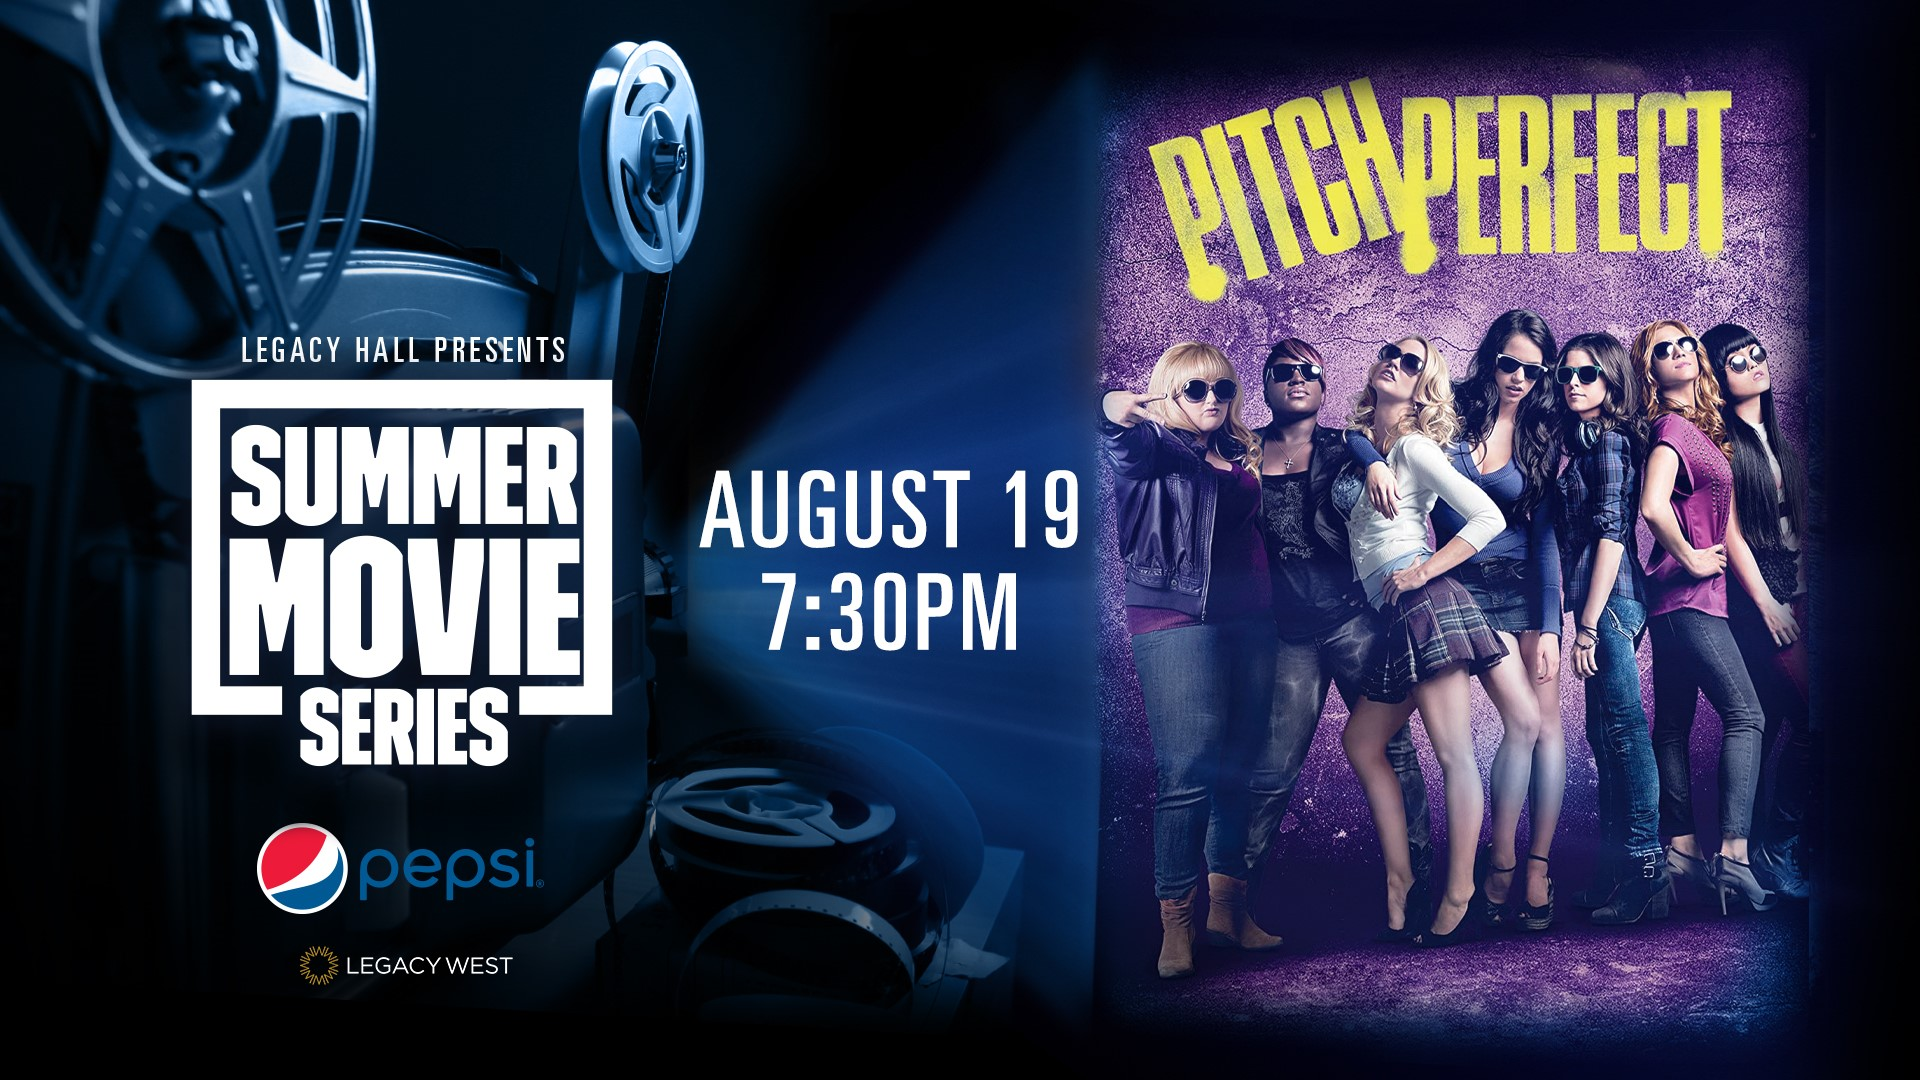 Promo image of Pepsi Summer Movie Series: Pitch Perfect